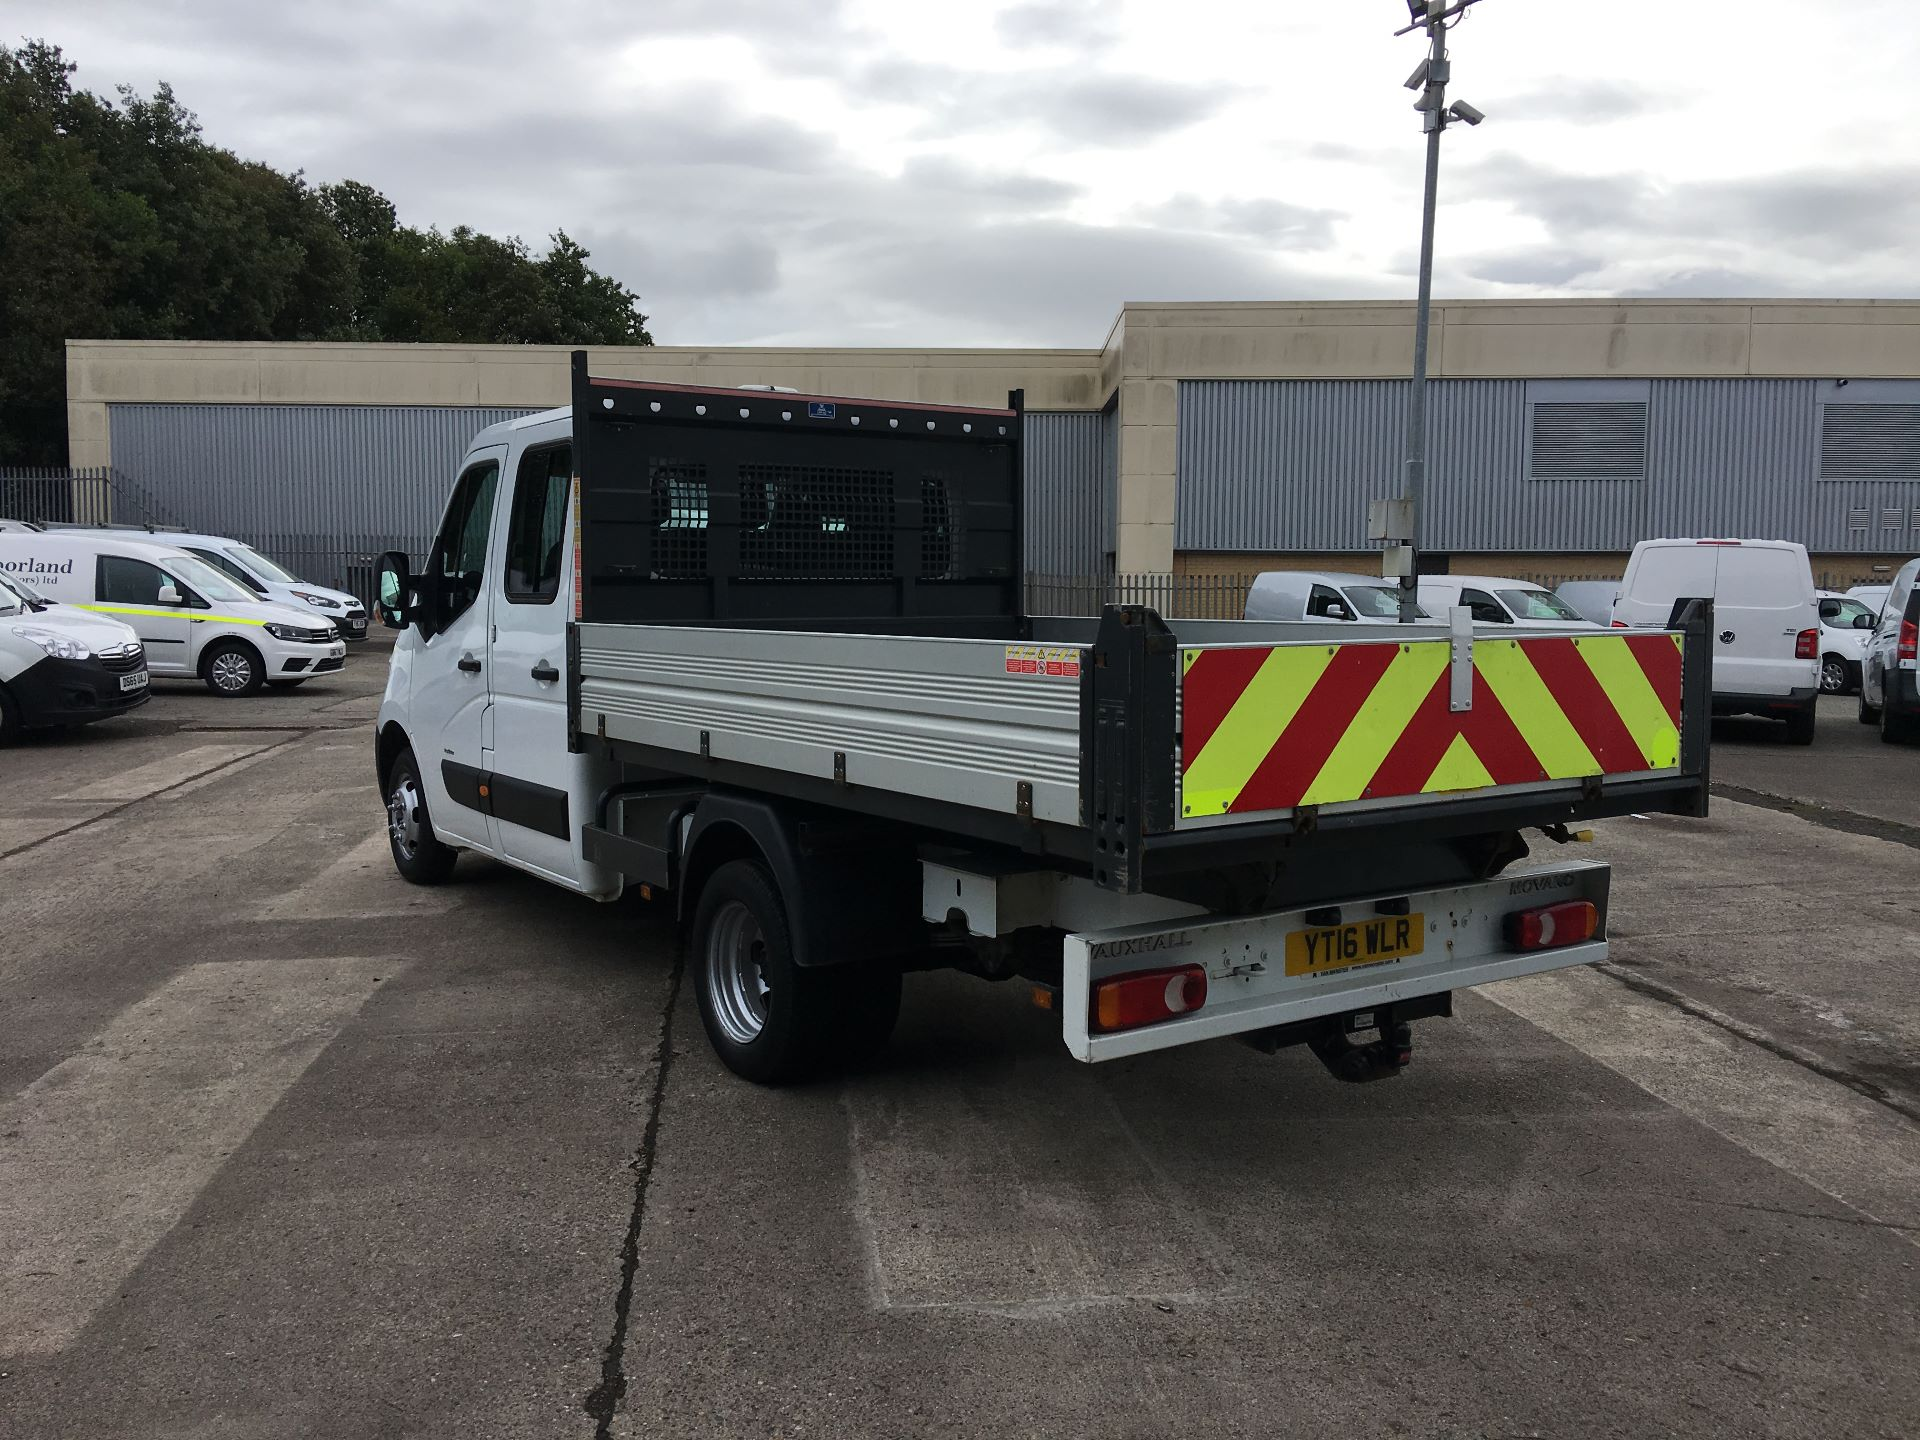 2016 Vauxhall Movano 35 L3 DIESEL RWD 2.3 CDTI 125PS D/CAB TIPPER EURO 5 (YT16WLR) Image 10